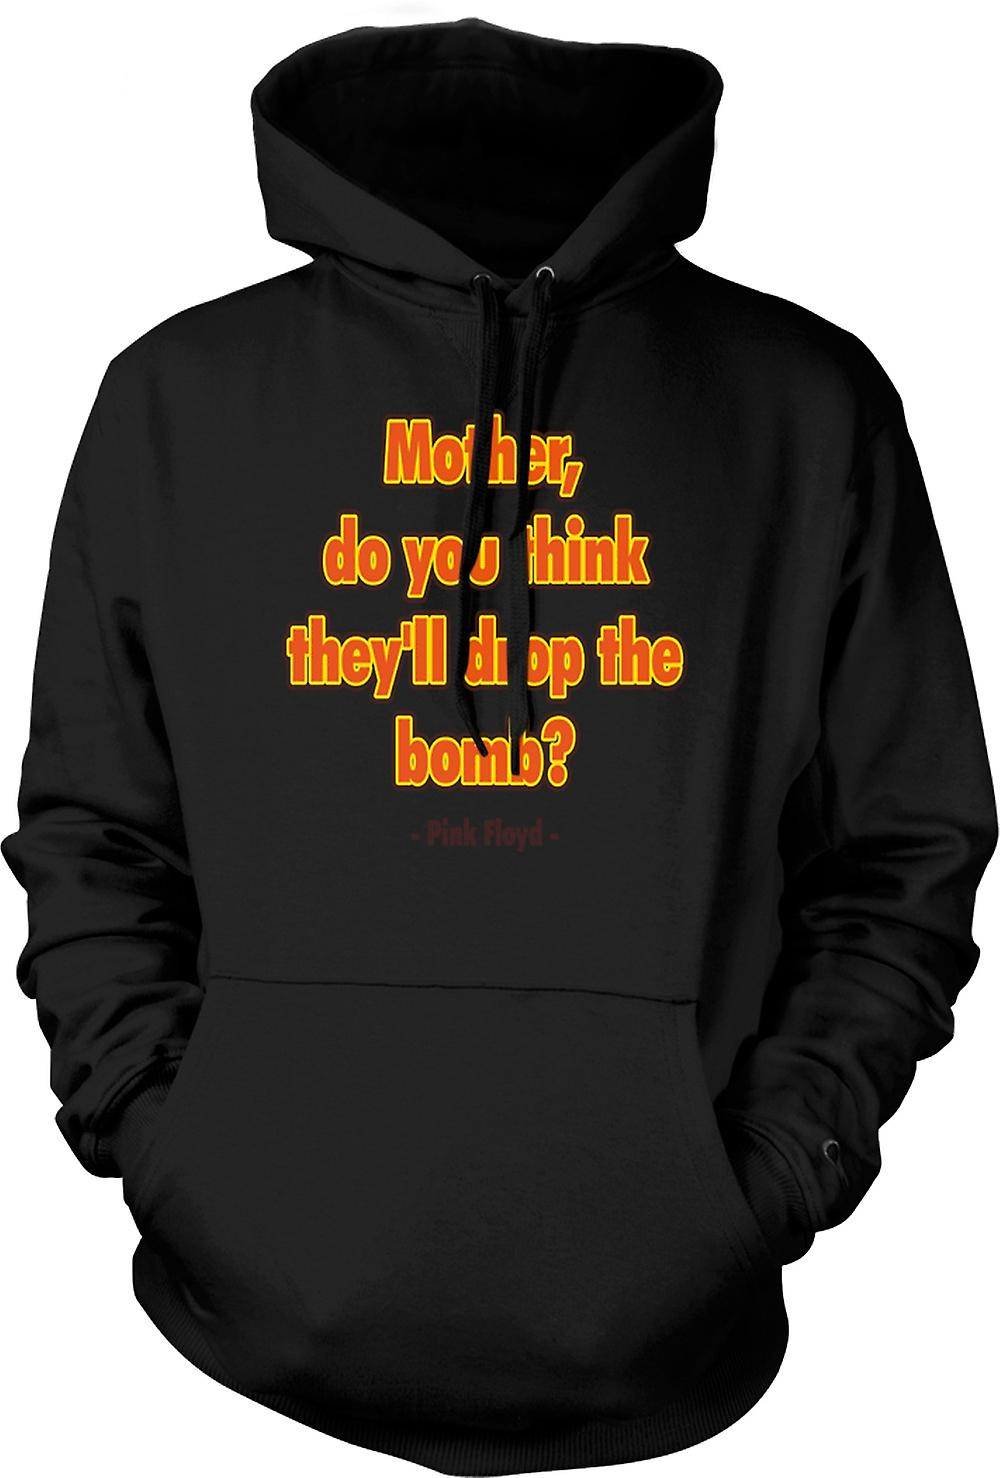 Mens Hoodie - Mother, Do You Think They'll Drop The Bomb